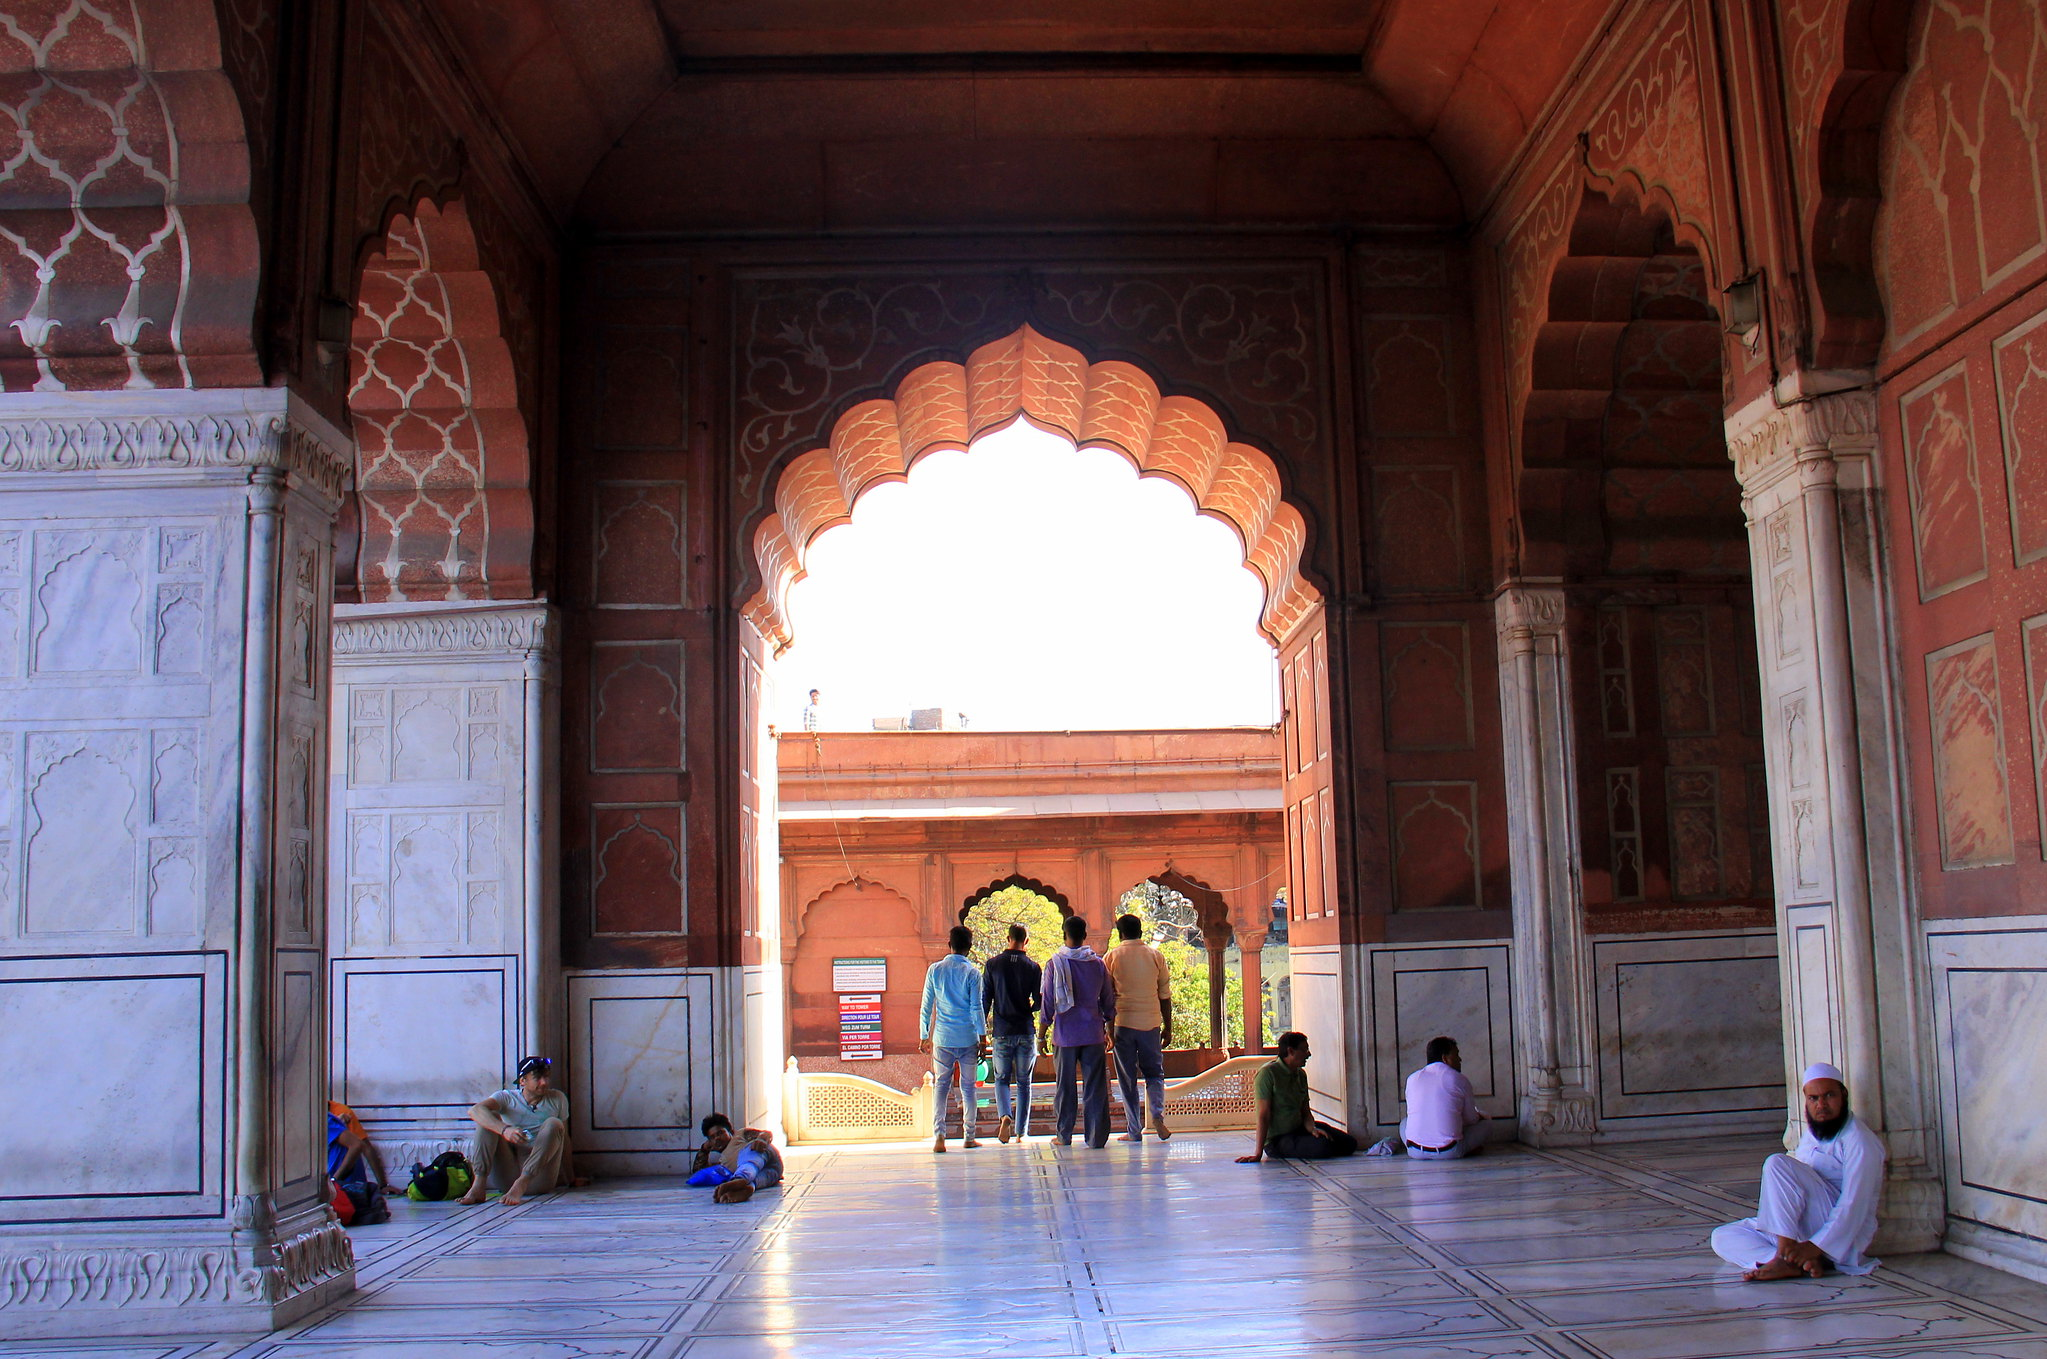 Jama Masjid has beautiful tile work inside